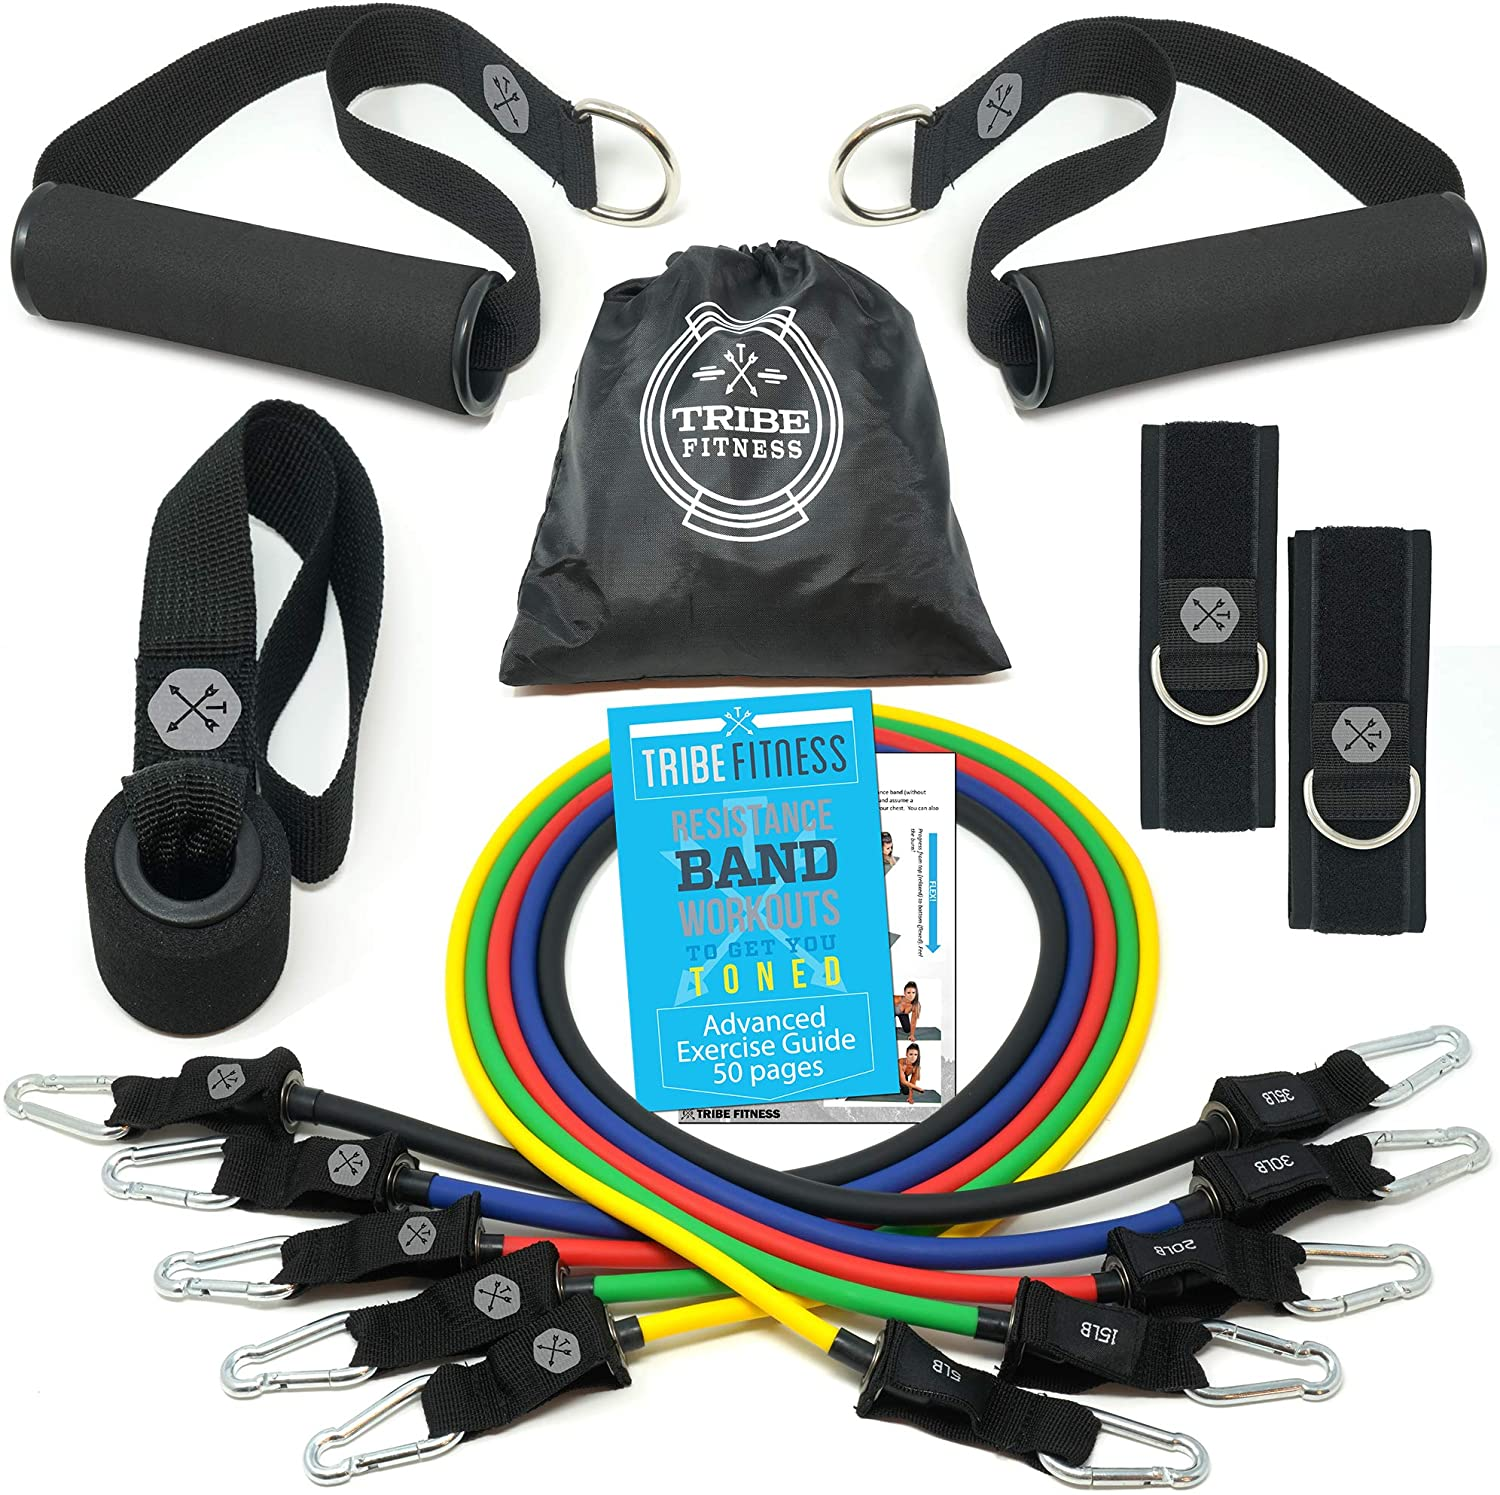 Premium 11pc Resistance Band Set - For Any Resistance Training and Home Workouts